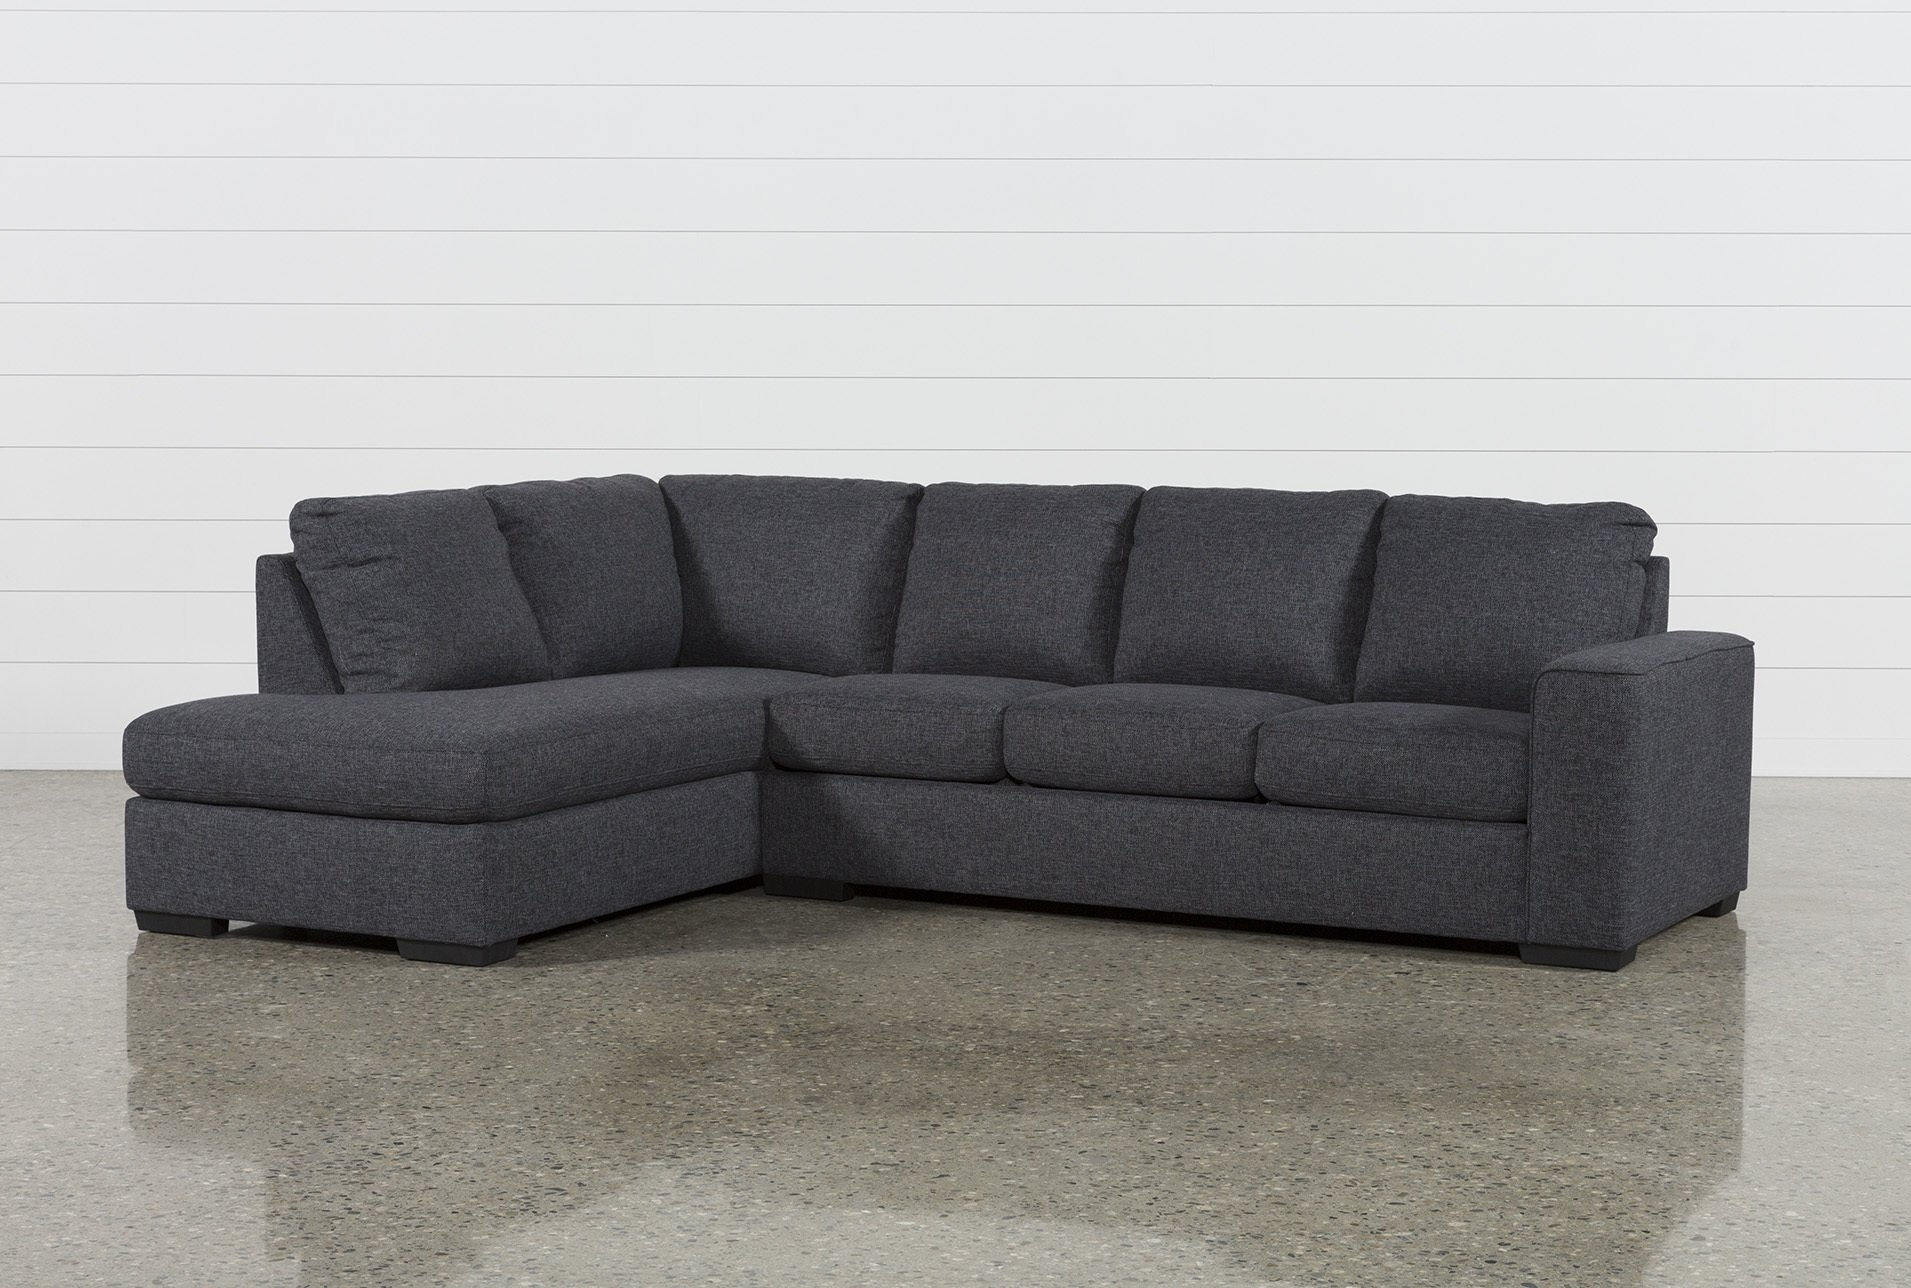 Lucy Dark Grey 2 Piece Sectional W/laf Chaise | Dark Grey And Products in Malbry Point 3 Piece Sectionals With Laf Chaise (Image 26 of 30)